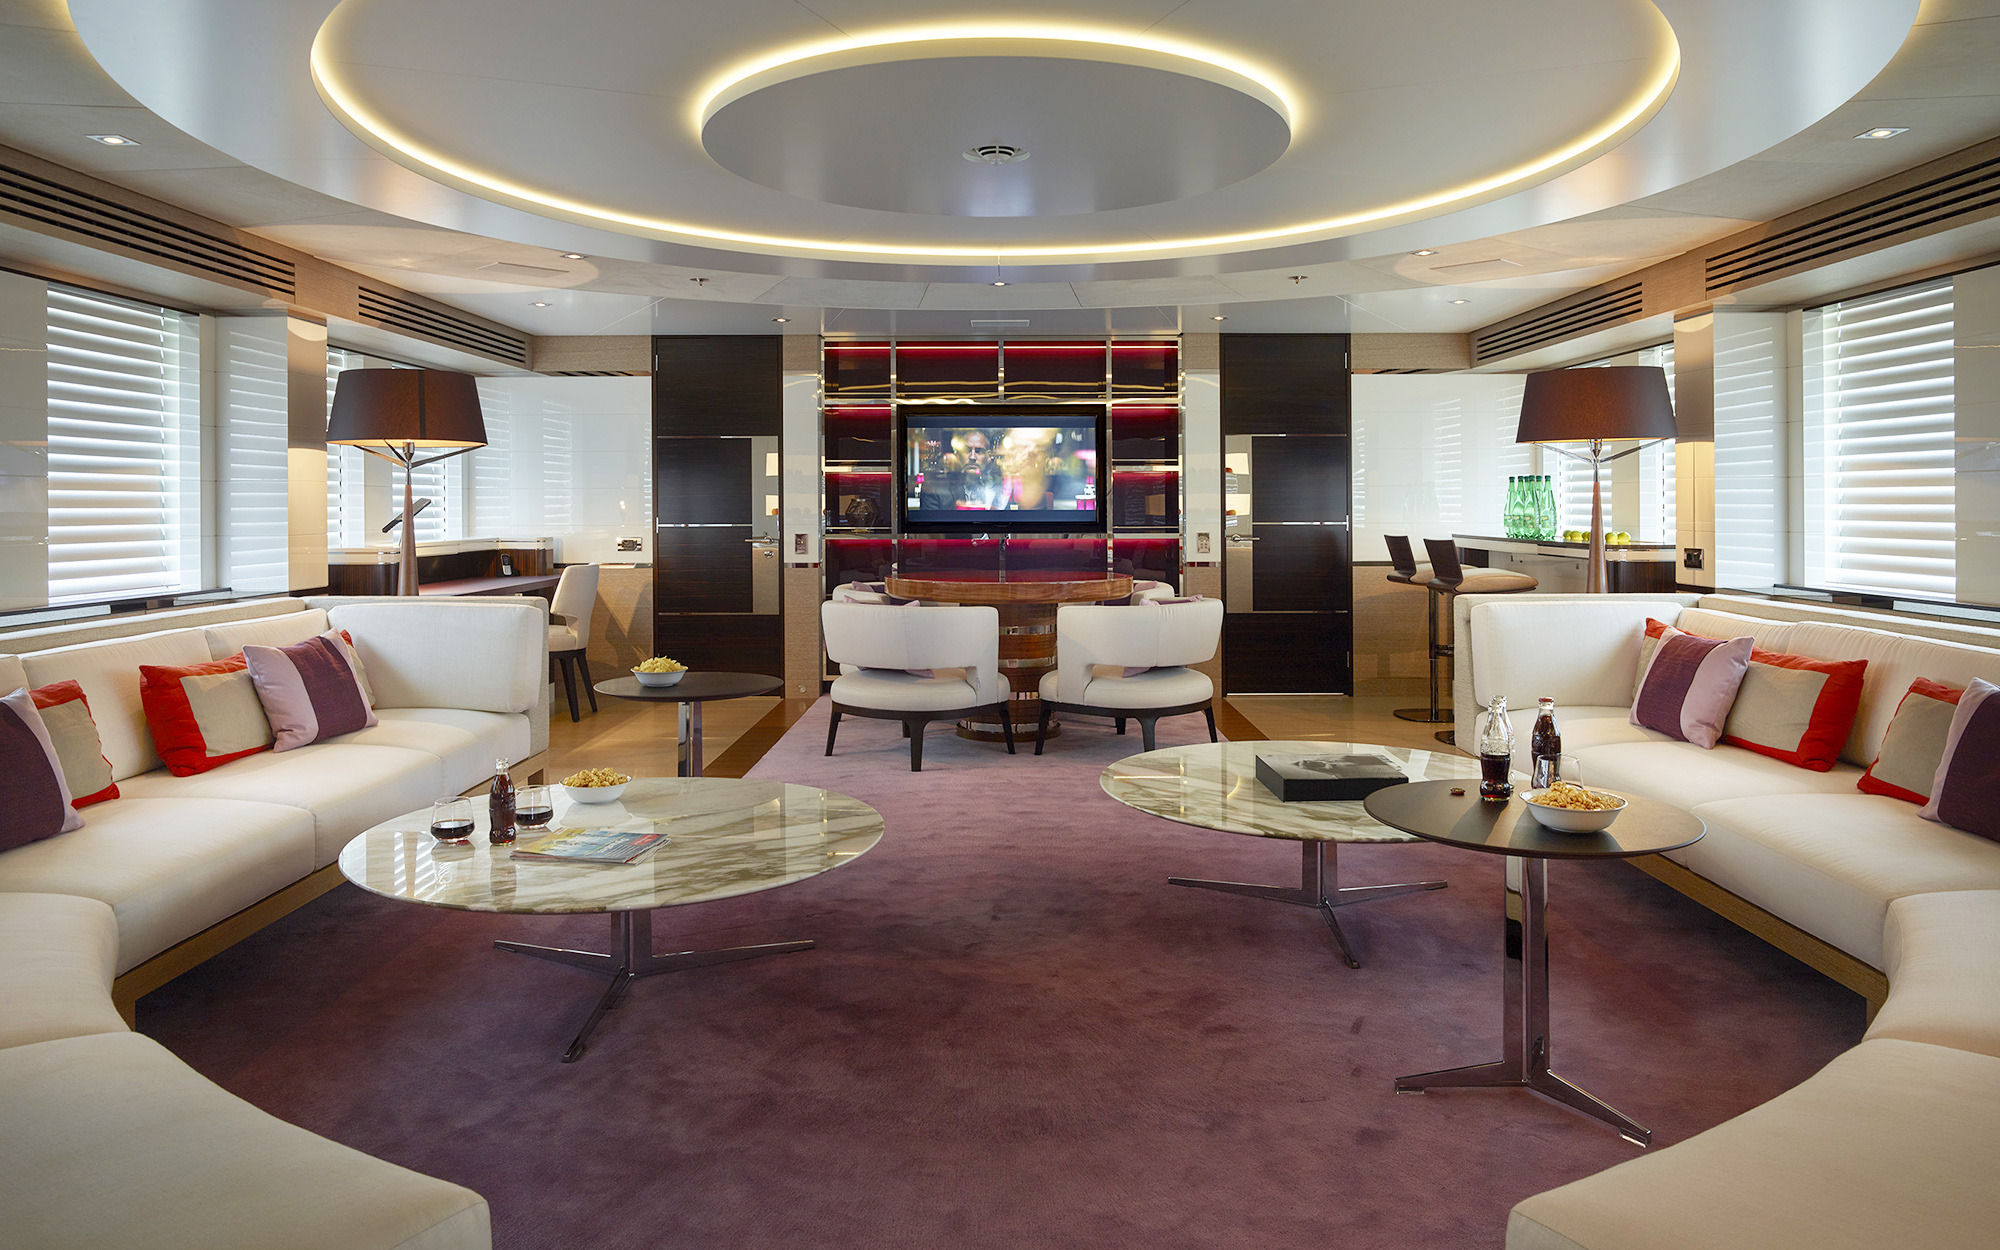 Upper Deck Saloon With A TV